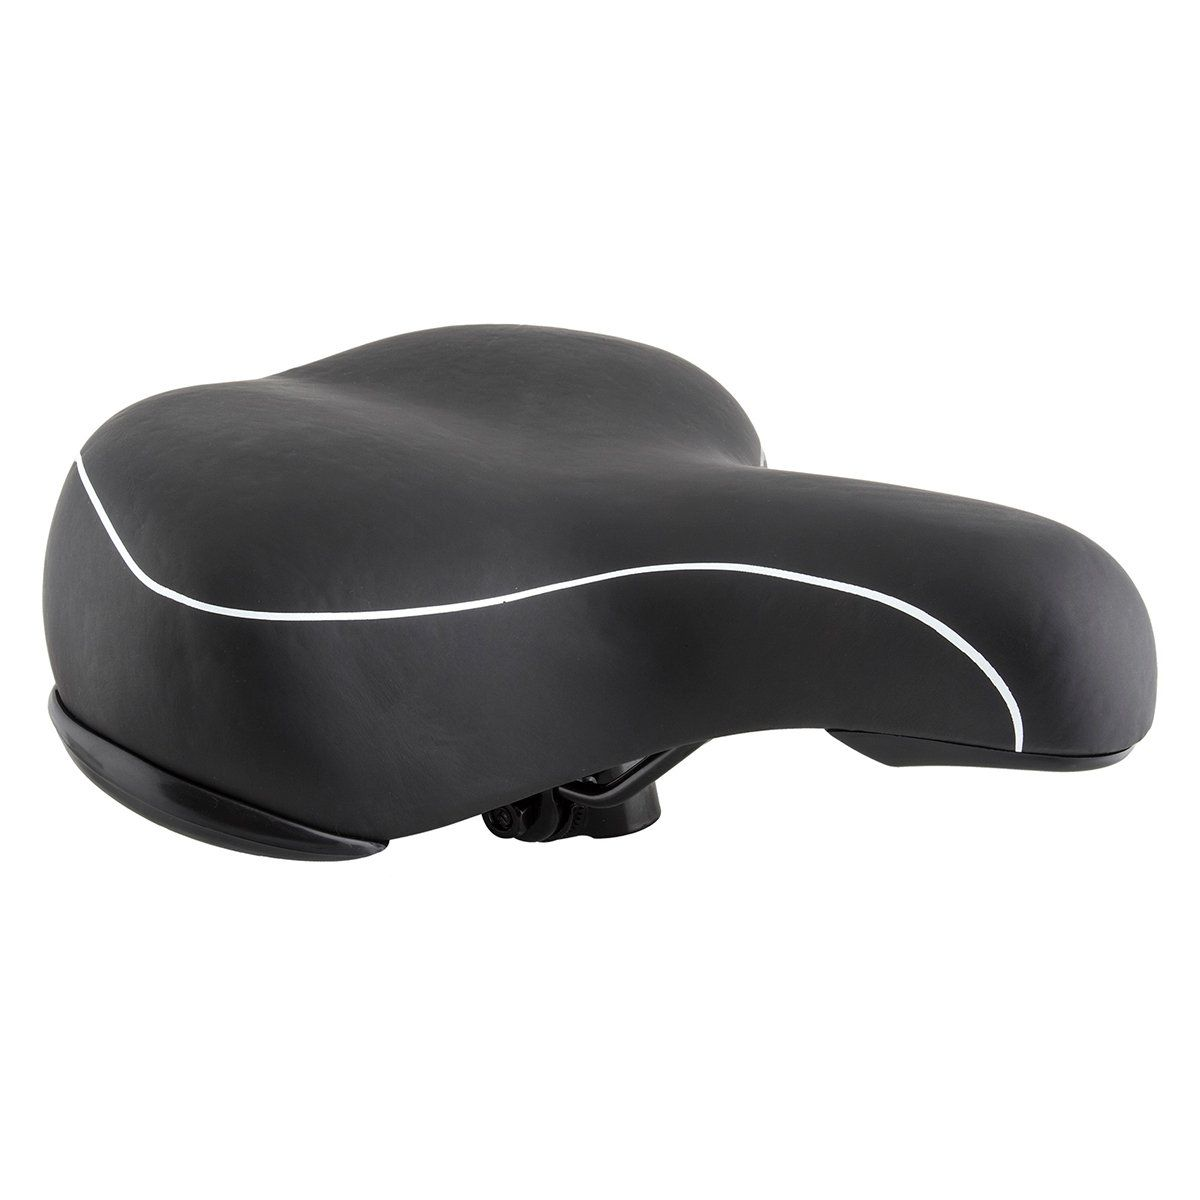 Support XL Cruiser Saddle